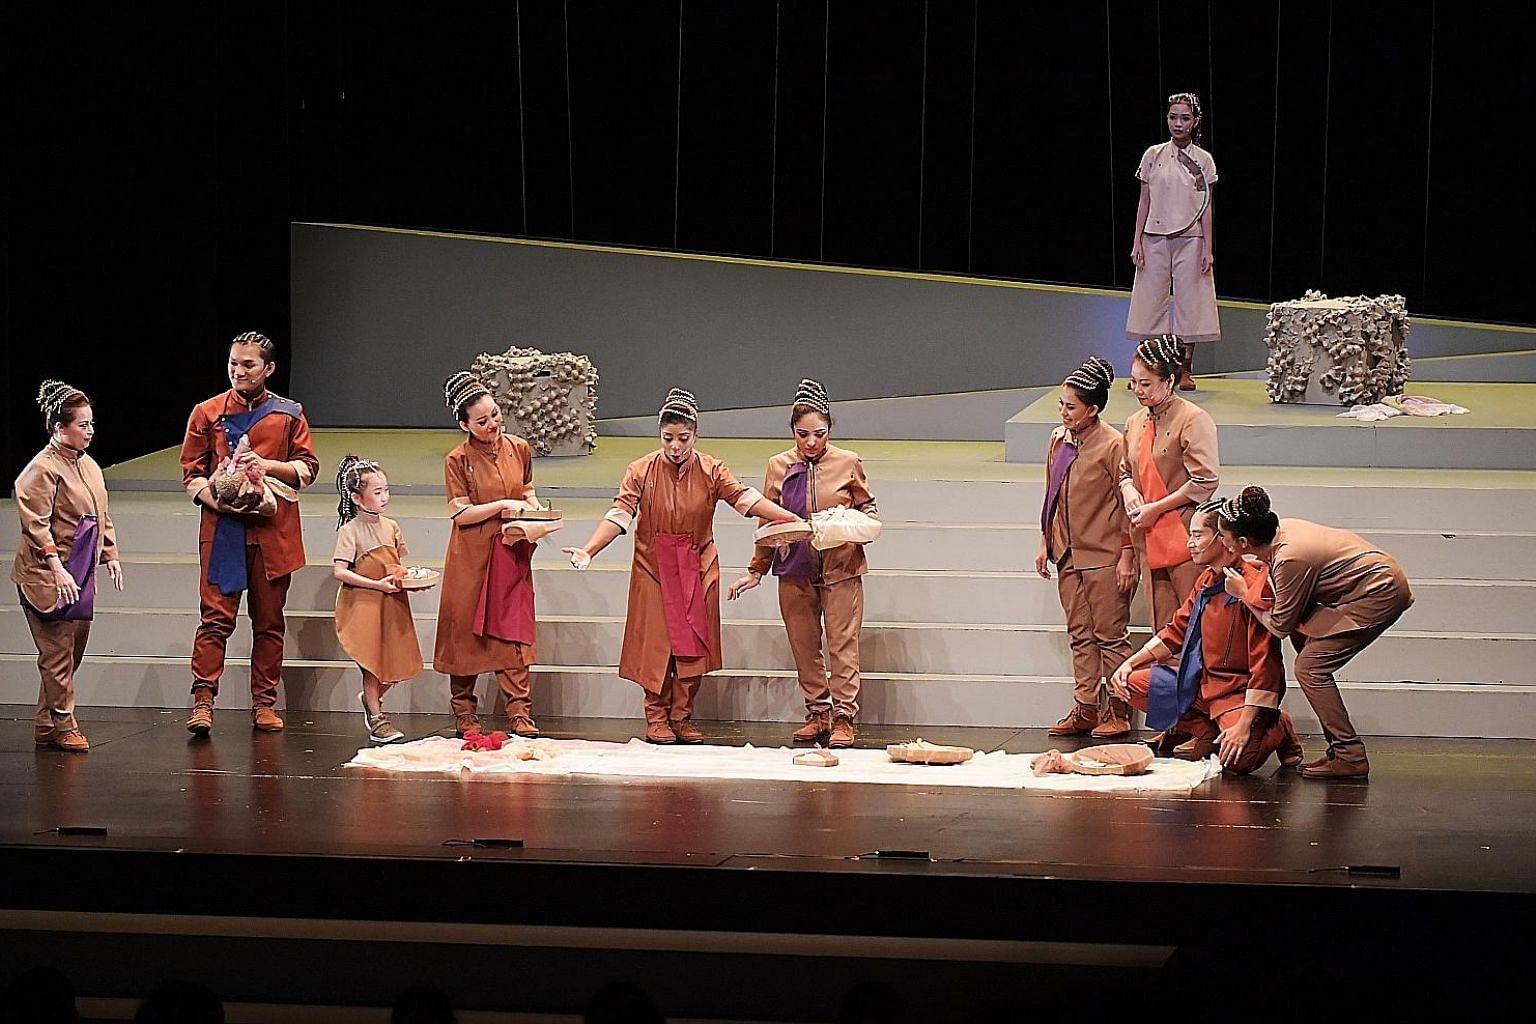 A performance by Singaporeans and new immigrants at the Victoria Theatre yesterday. It was jointly organised by the People's Association Integration Council and the National Integration Council to promote greater integration.